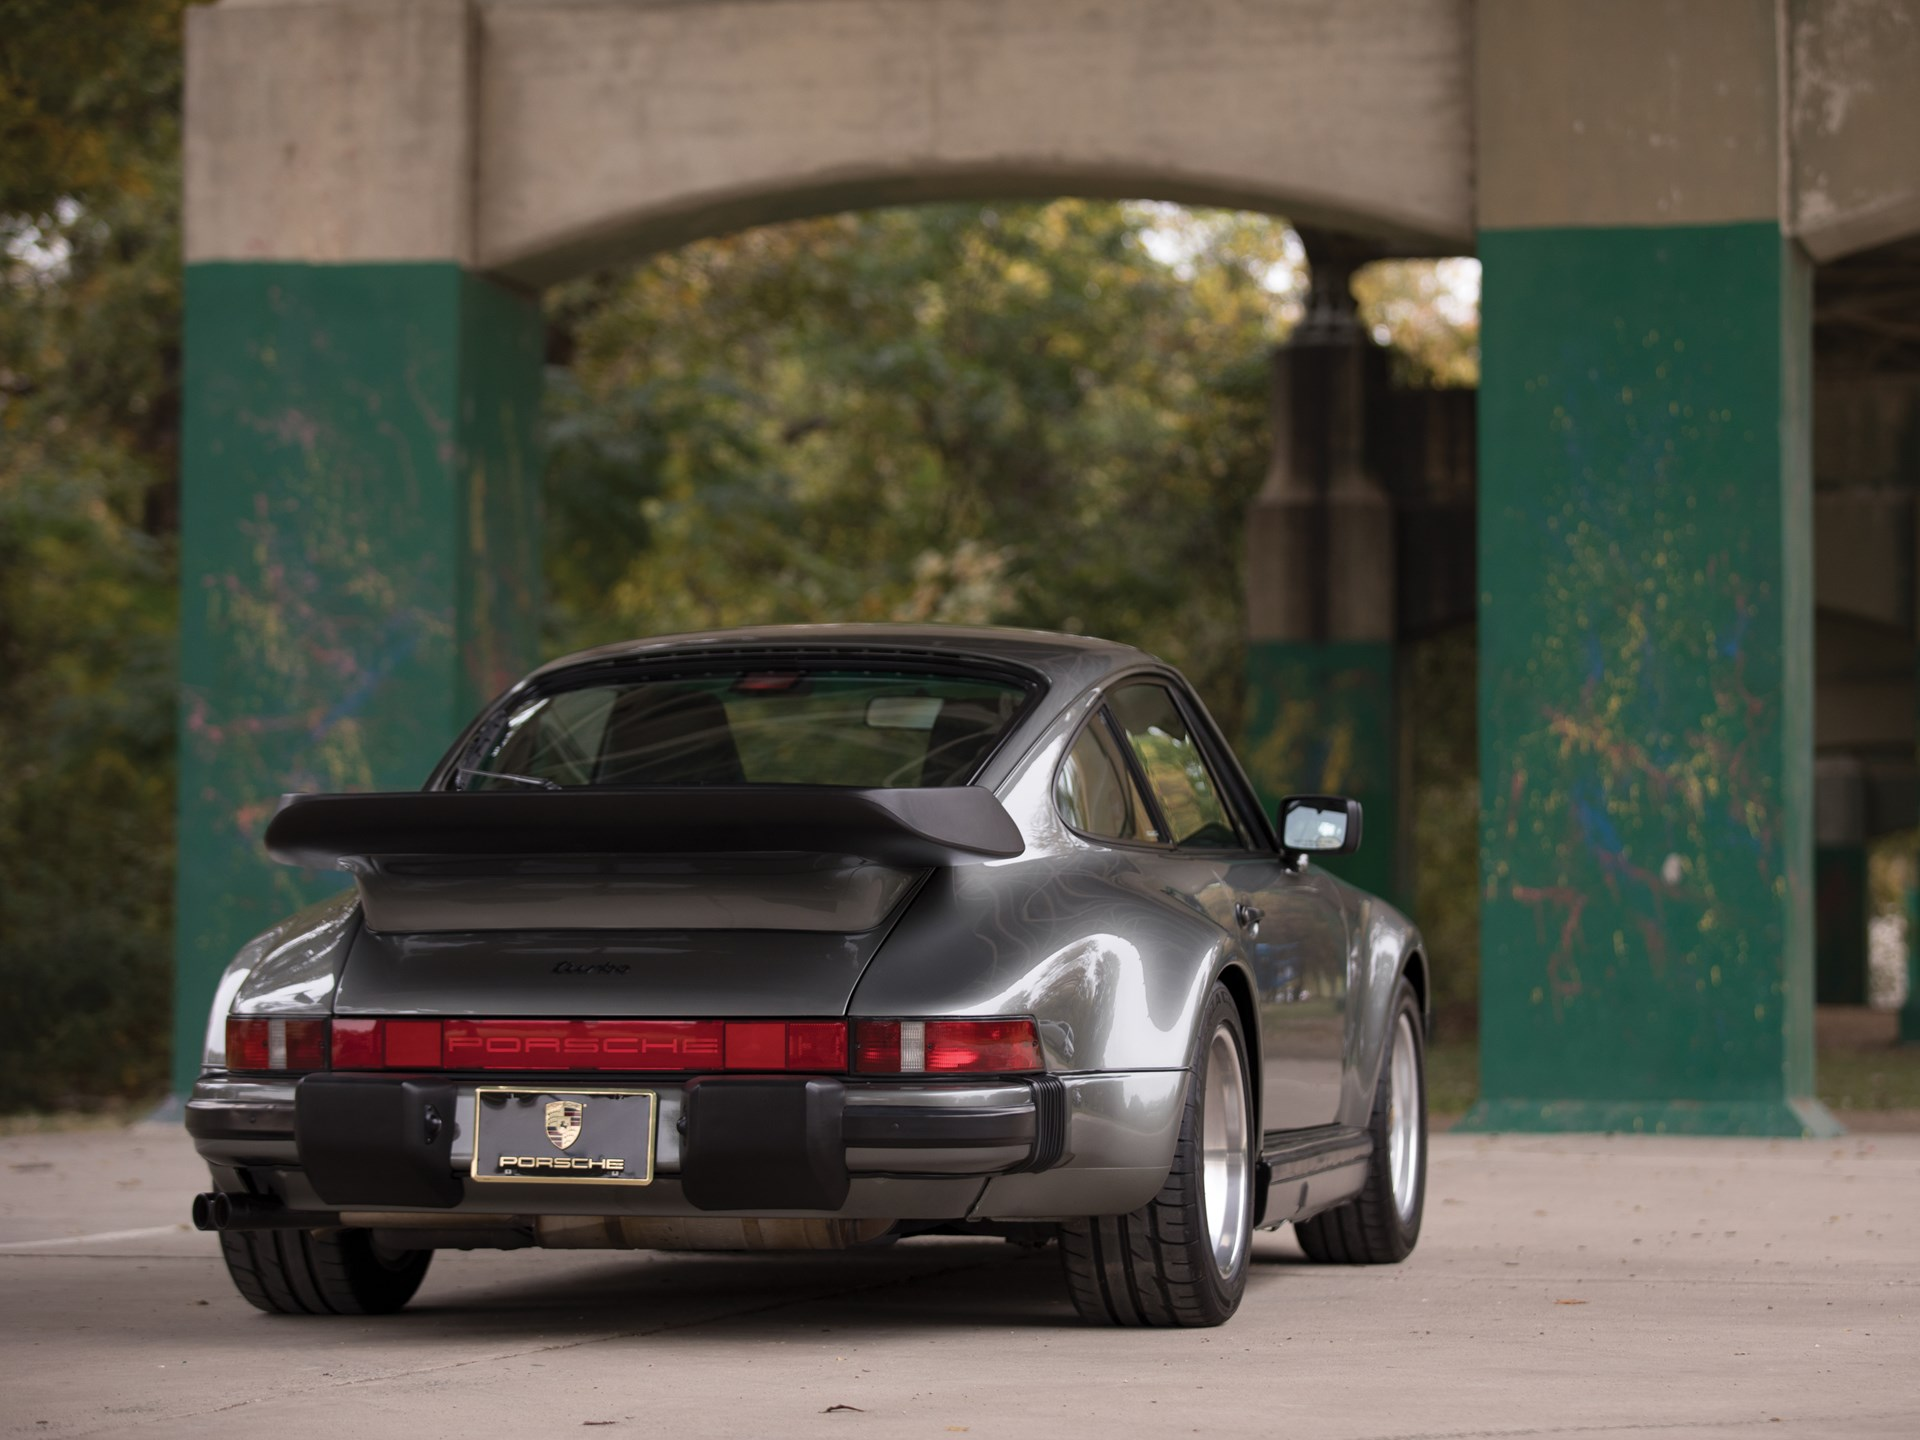 1988 Porsche 911 Turbo 'Flat Nose' Coupe